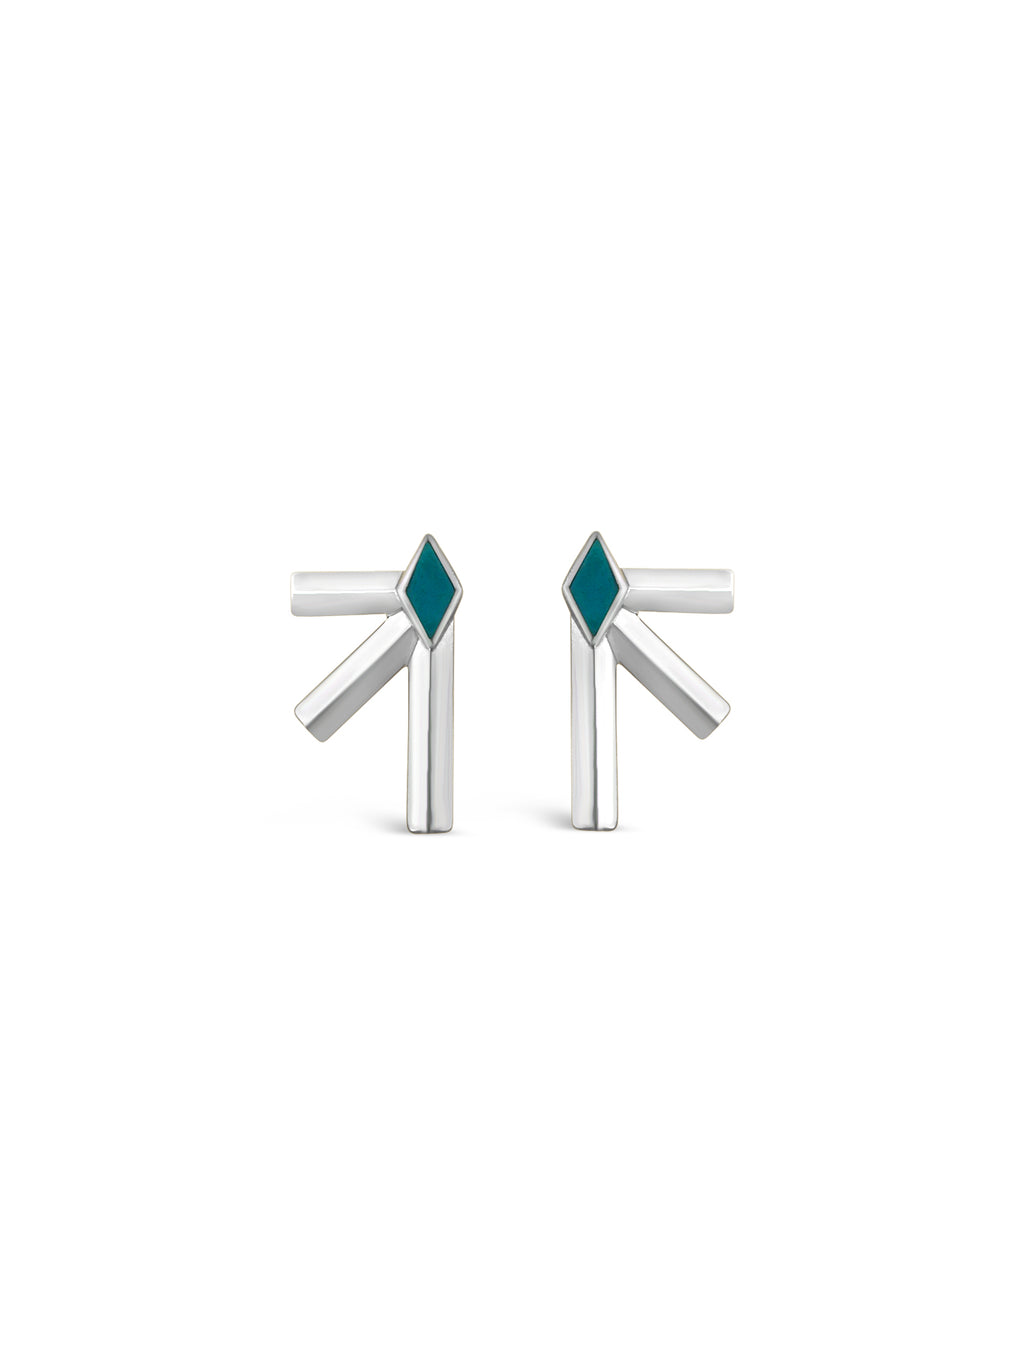 Bandit Earrings- Sterling